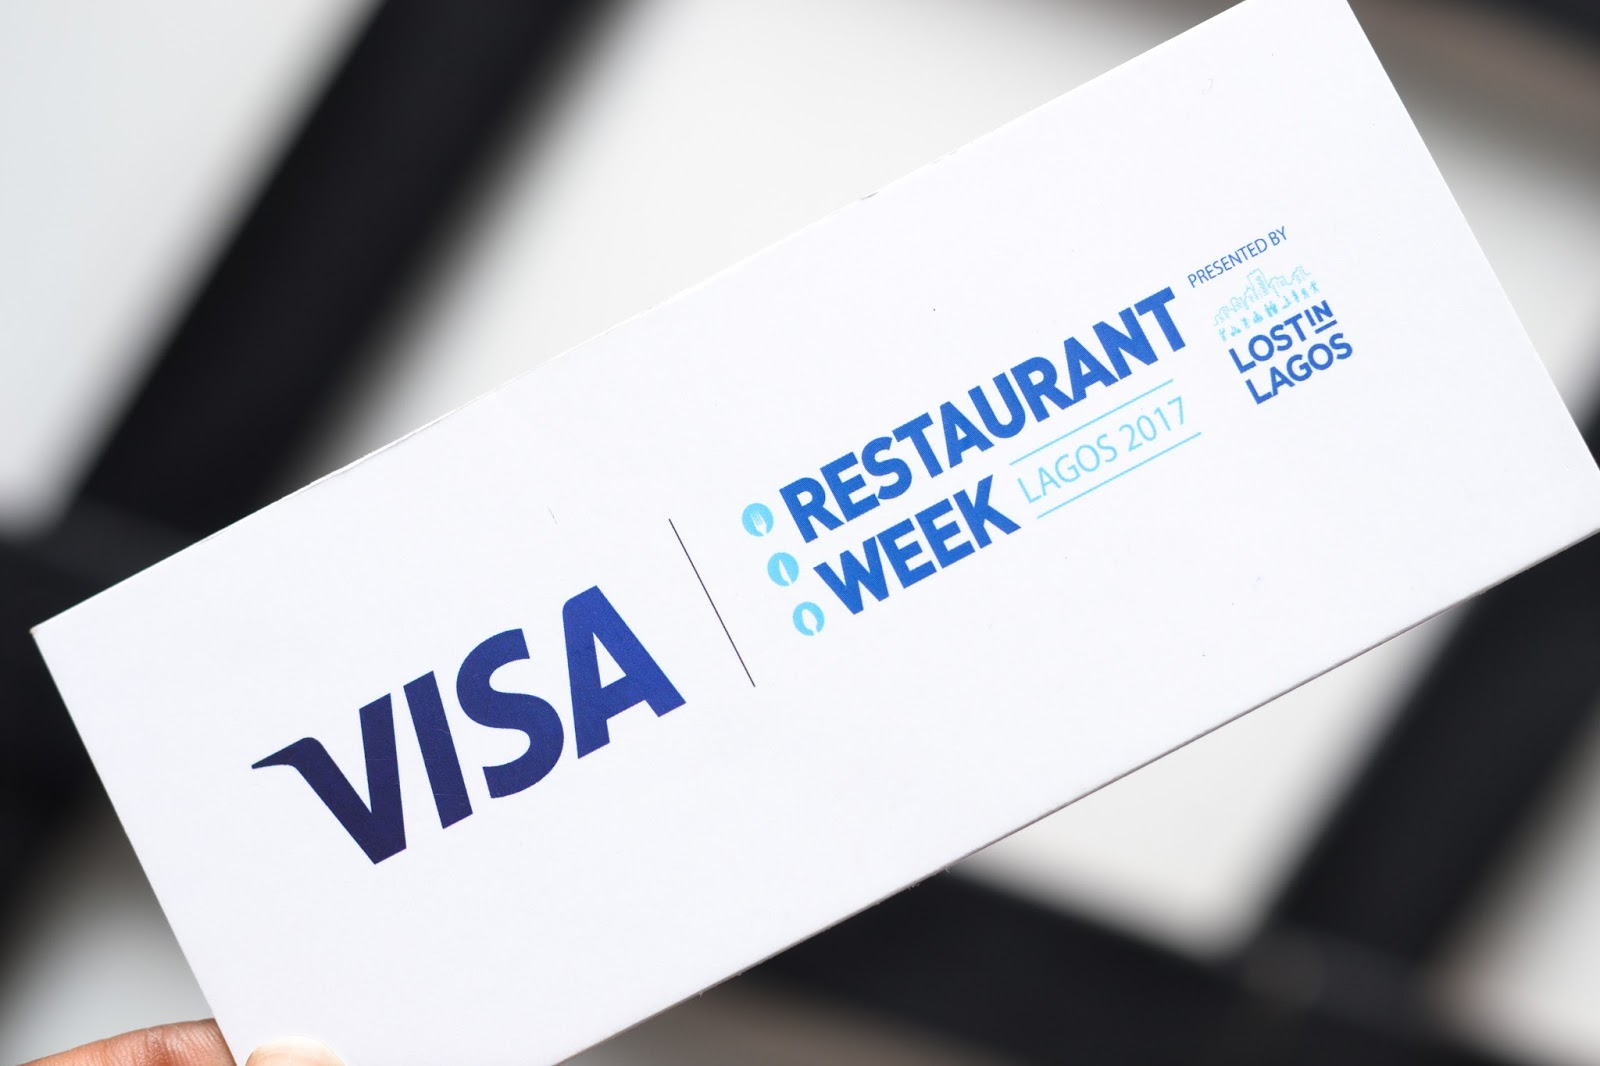 Visa Restaurant Week Voucher